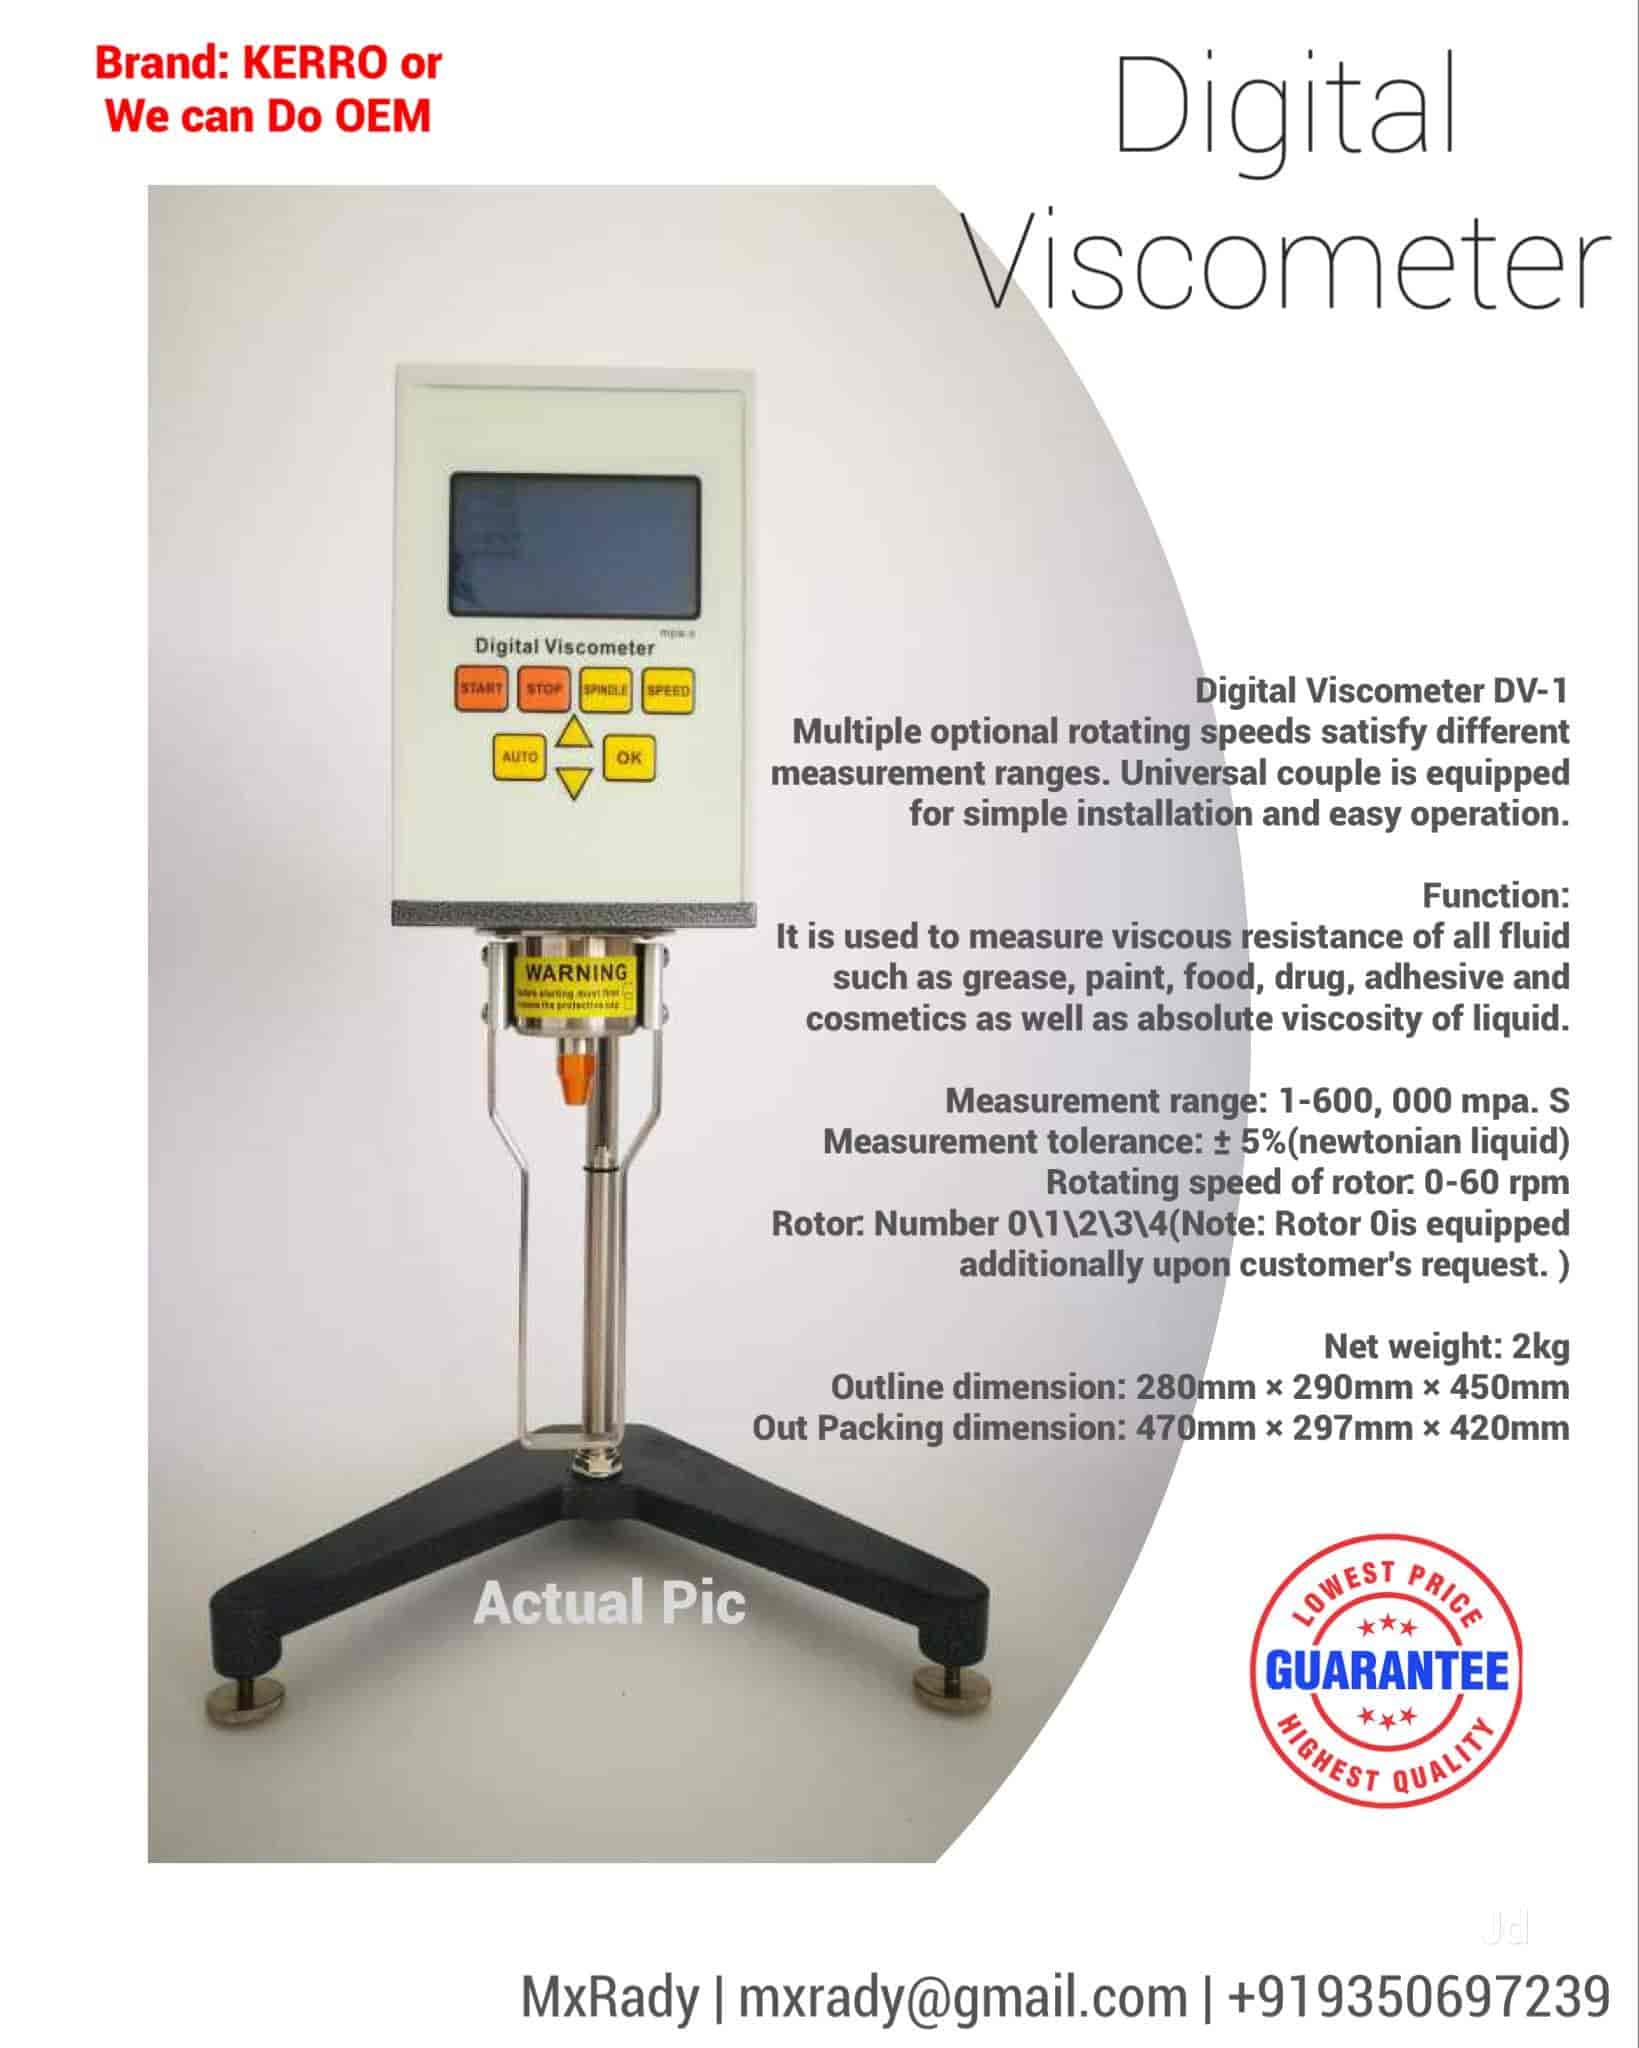 Mxrady Lab Solutions Pvt Ltd, Pitampura - Electronic Weighing